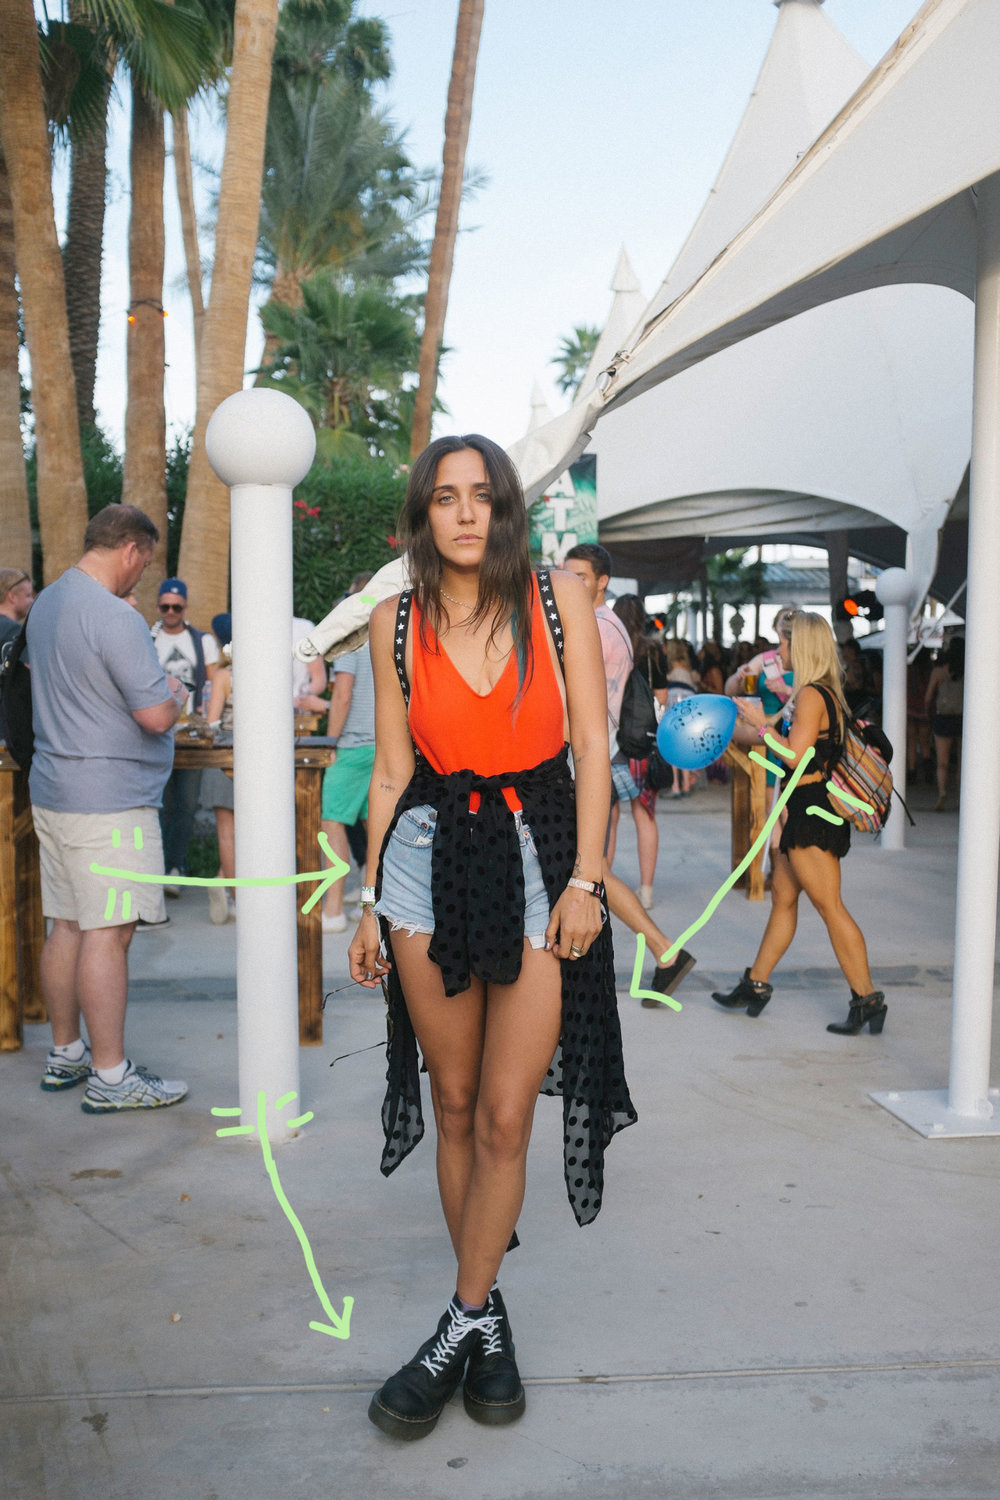 The first time I saw this Coachella look I was gagging (in a good way.) The way jesse has paired this laid back look with the sheer top tied around her waist is amazing. This look is so easy and effortless.